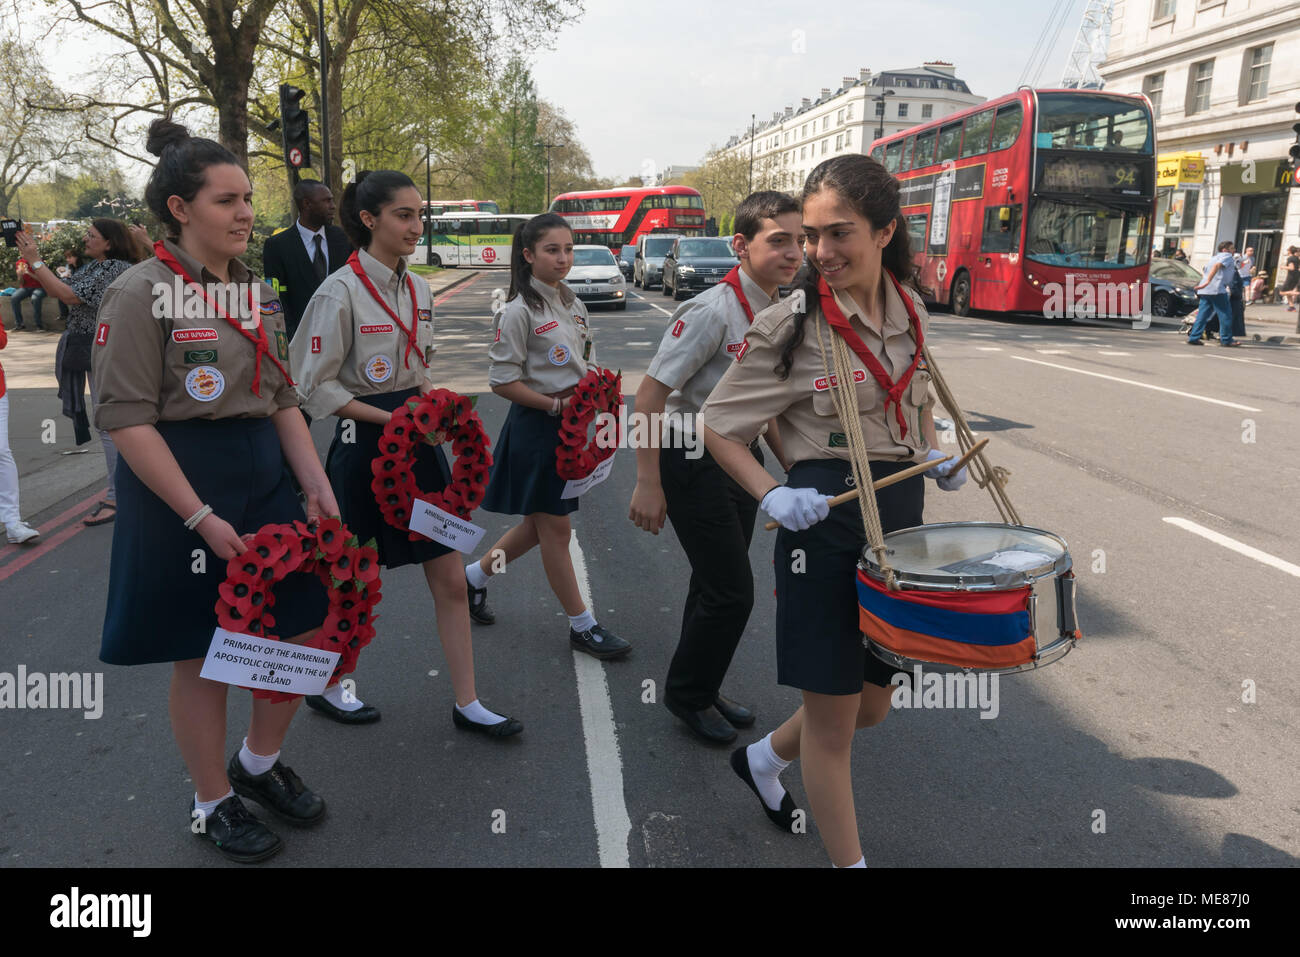 London, UK. 21st April 2018. Armenian Scouts set off with a drummer and carrying wreaths leading the Armenian march through London from Marble Arch to the Cenotaph at the start of a series of events commemorating the 103rd anniversary of the beginning of the Armenian Genocide. They demand the UK follow the lead of many other countries and recognise the Armenian genocide. Between 1915 and 1923 Turkey killed 1.5m Armenians, around 70% of the Armenian population, but Turkey still refuses to accept these mass killings as genocide. Credit: Peter Marshall/Alamy Live News - Stock Image